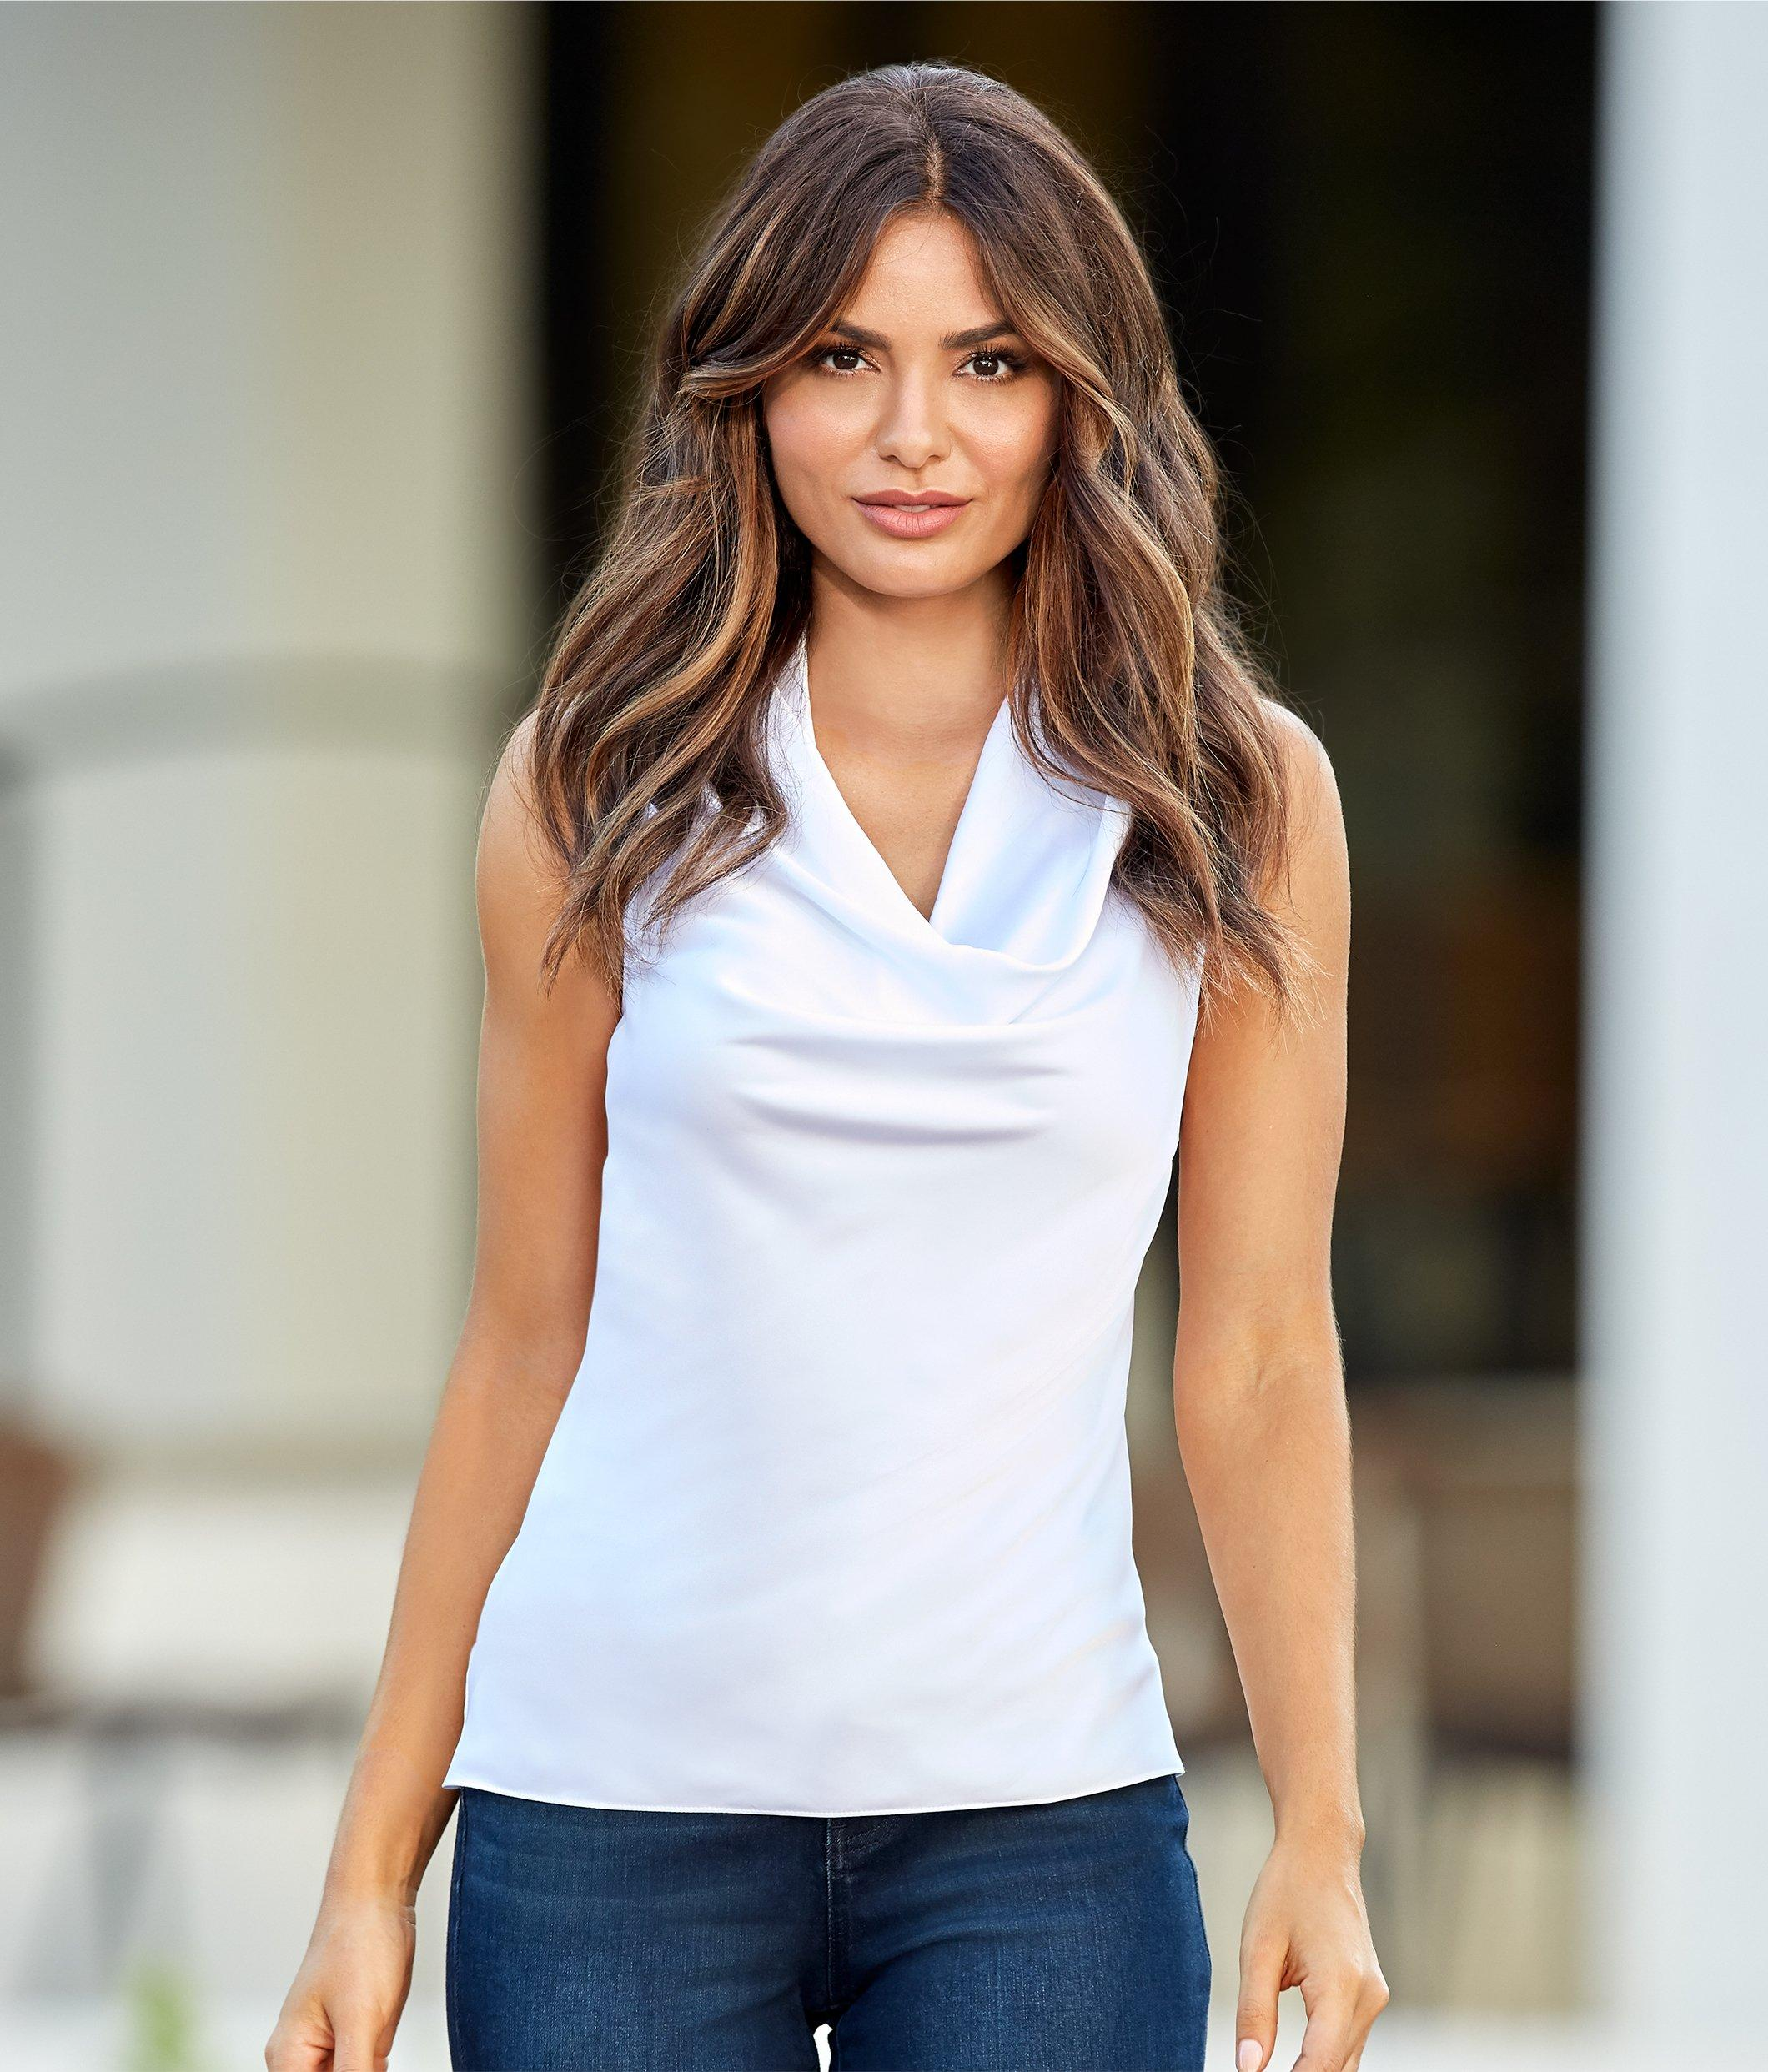 model wearing a white sleeveless cowl neck top with jeans.